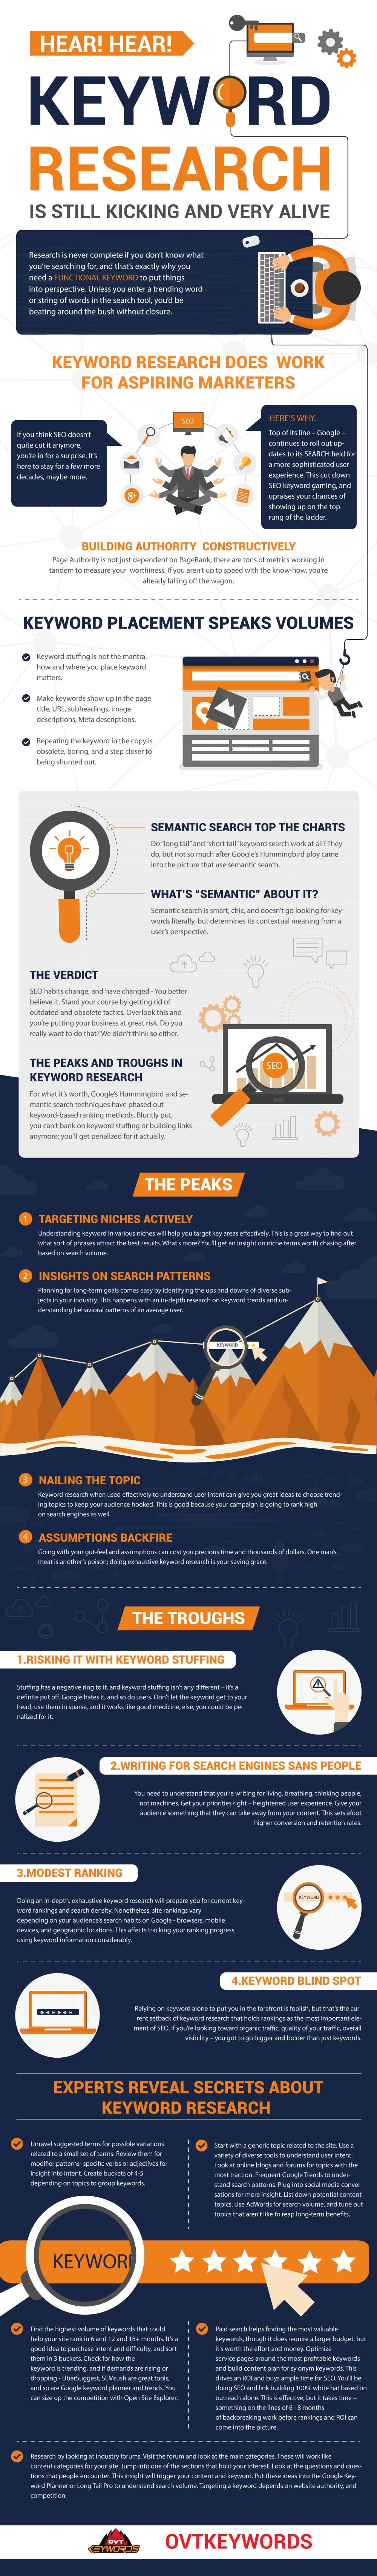 Keyword Research: Still Kicking and Very Alive - #Infographic